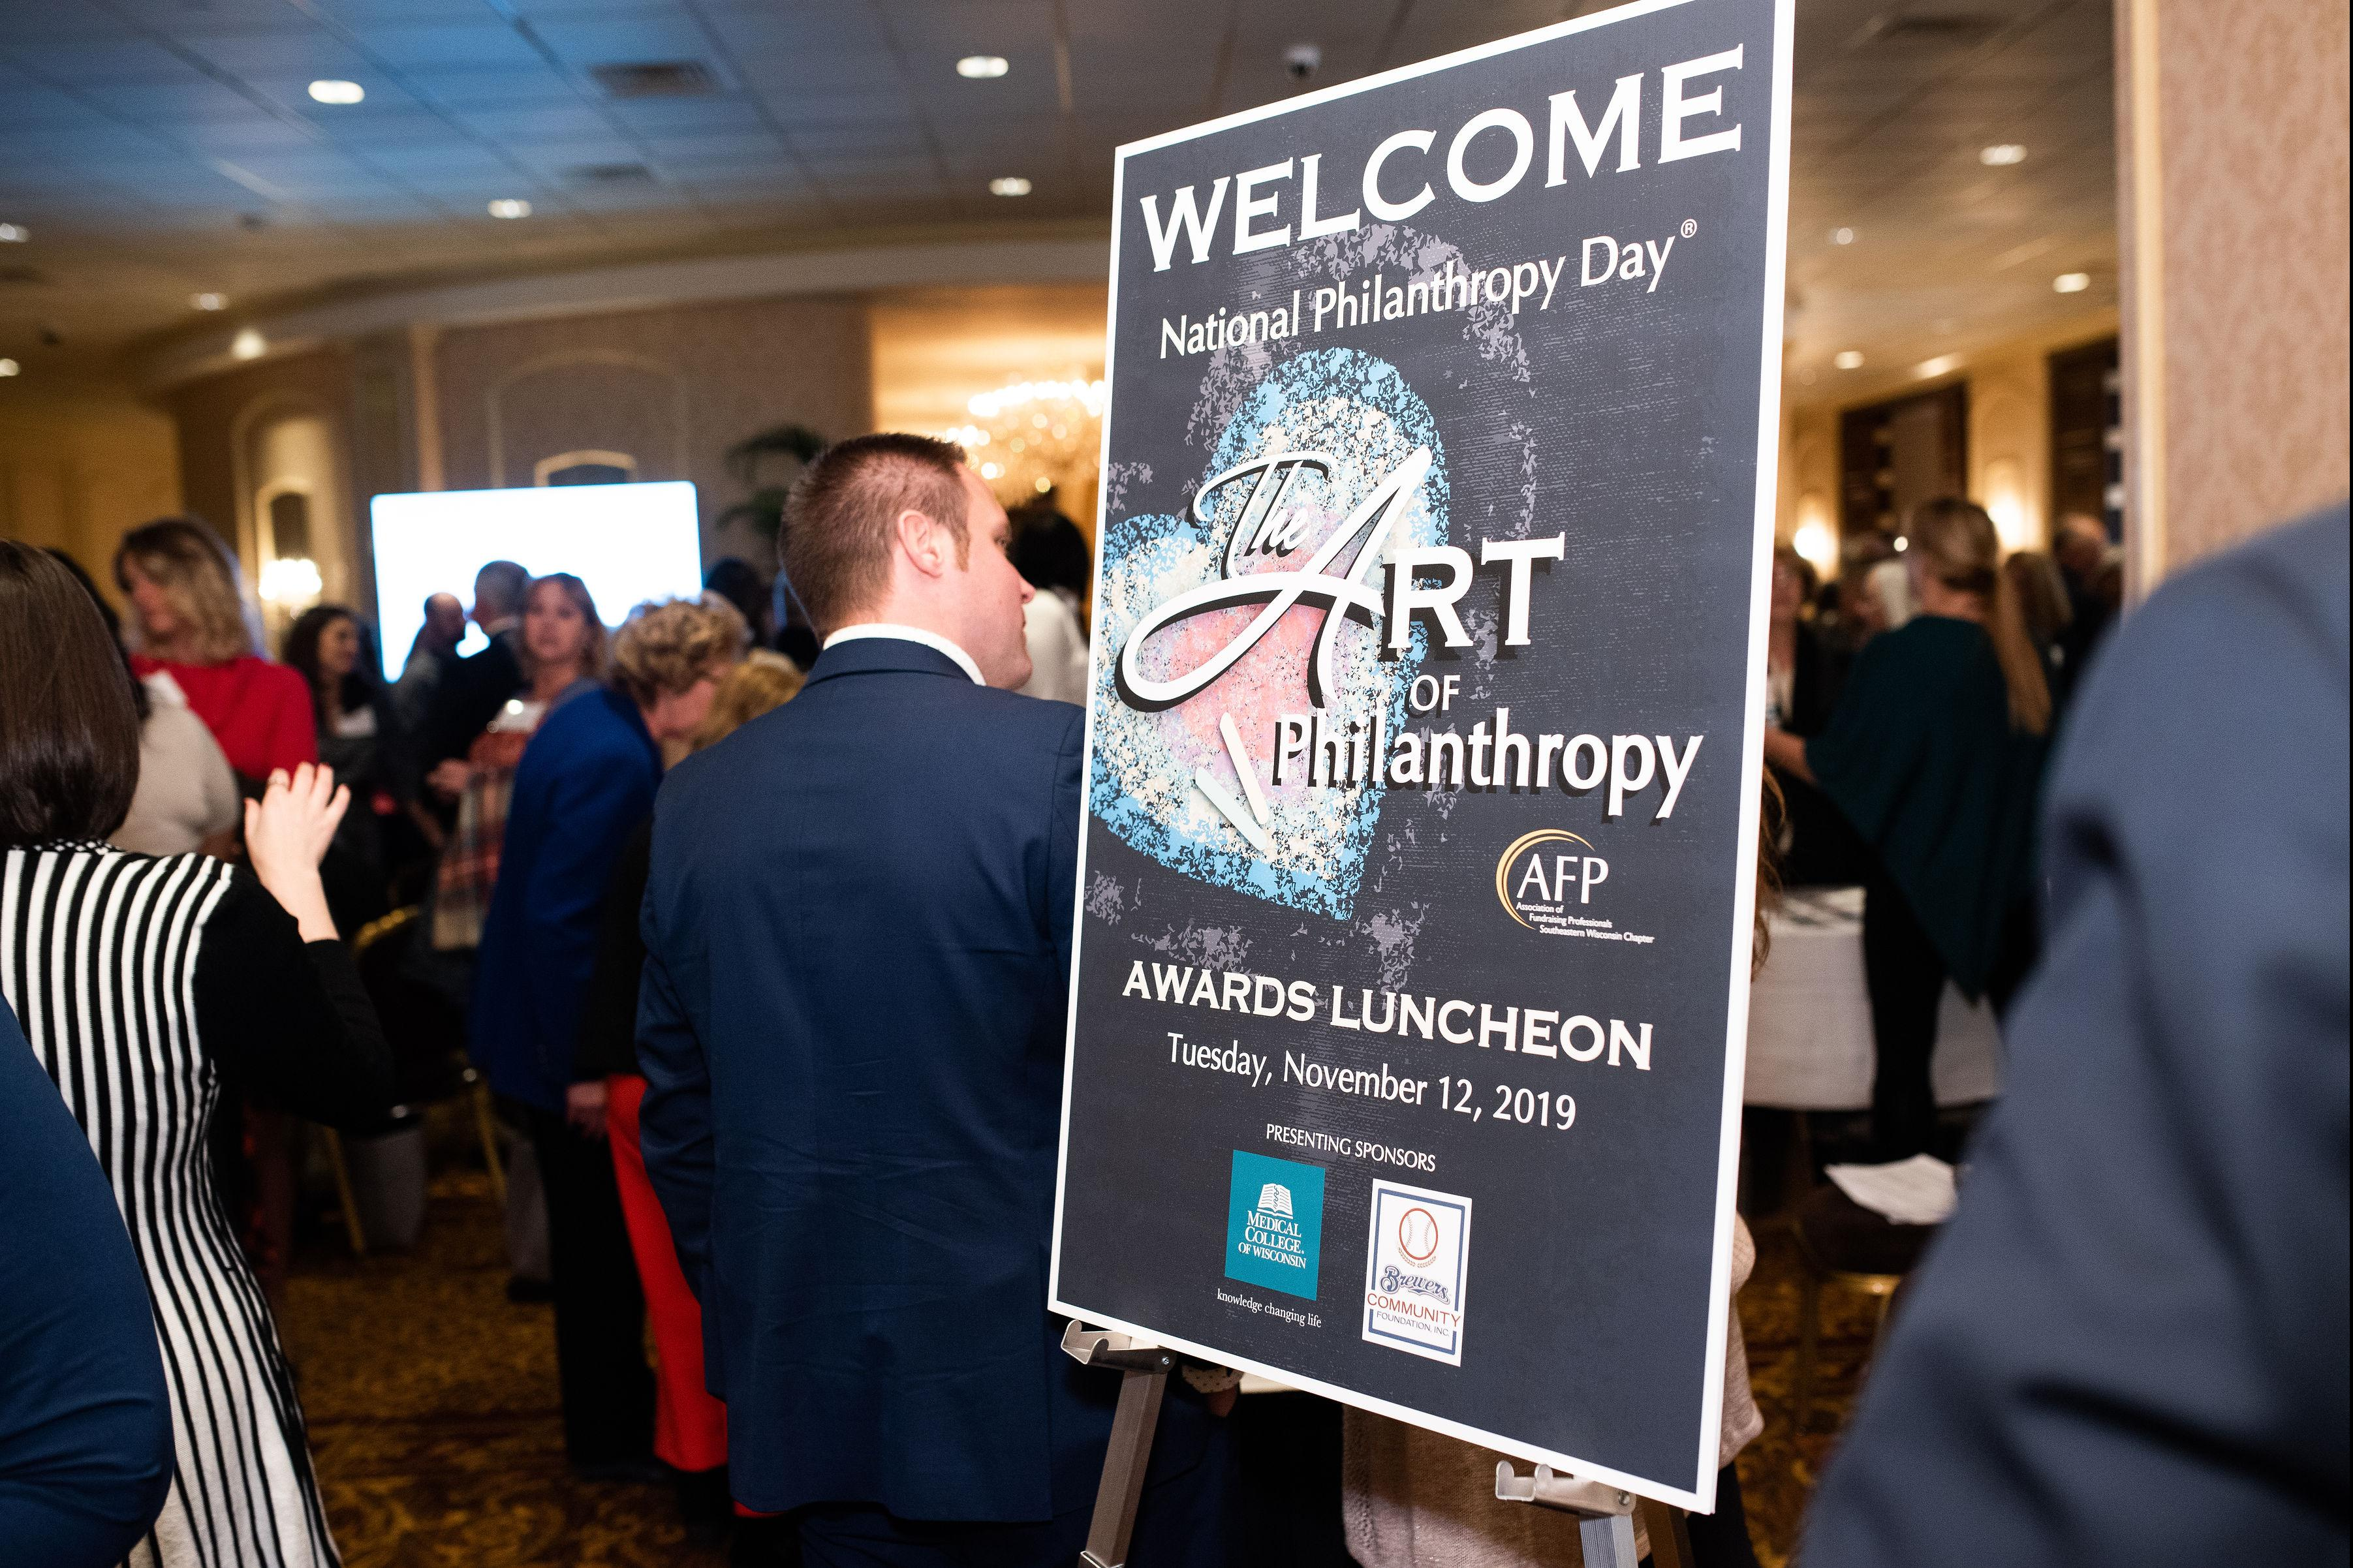 2019 National Philanthropy Day Welcome Reception